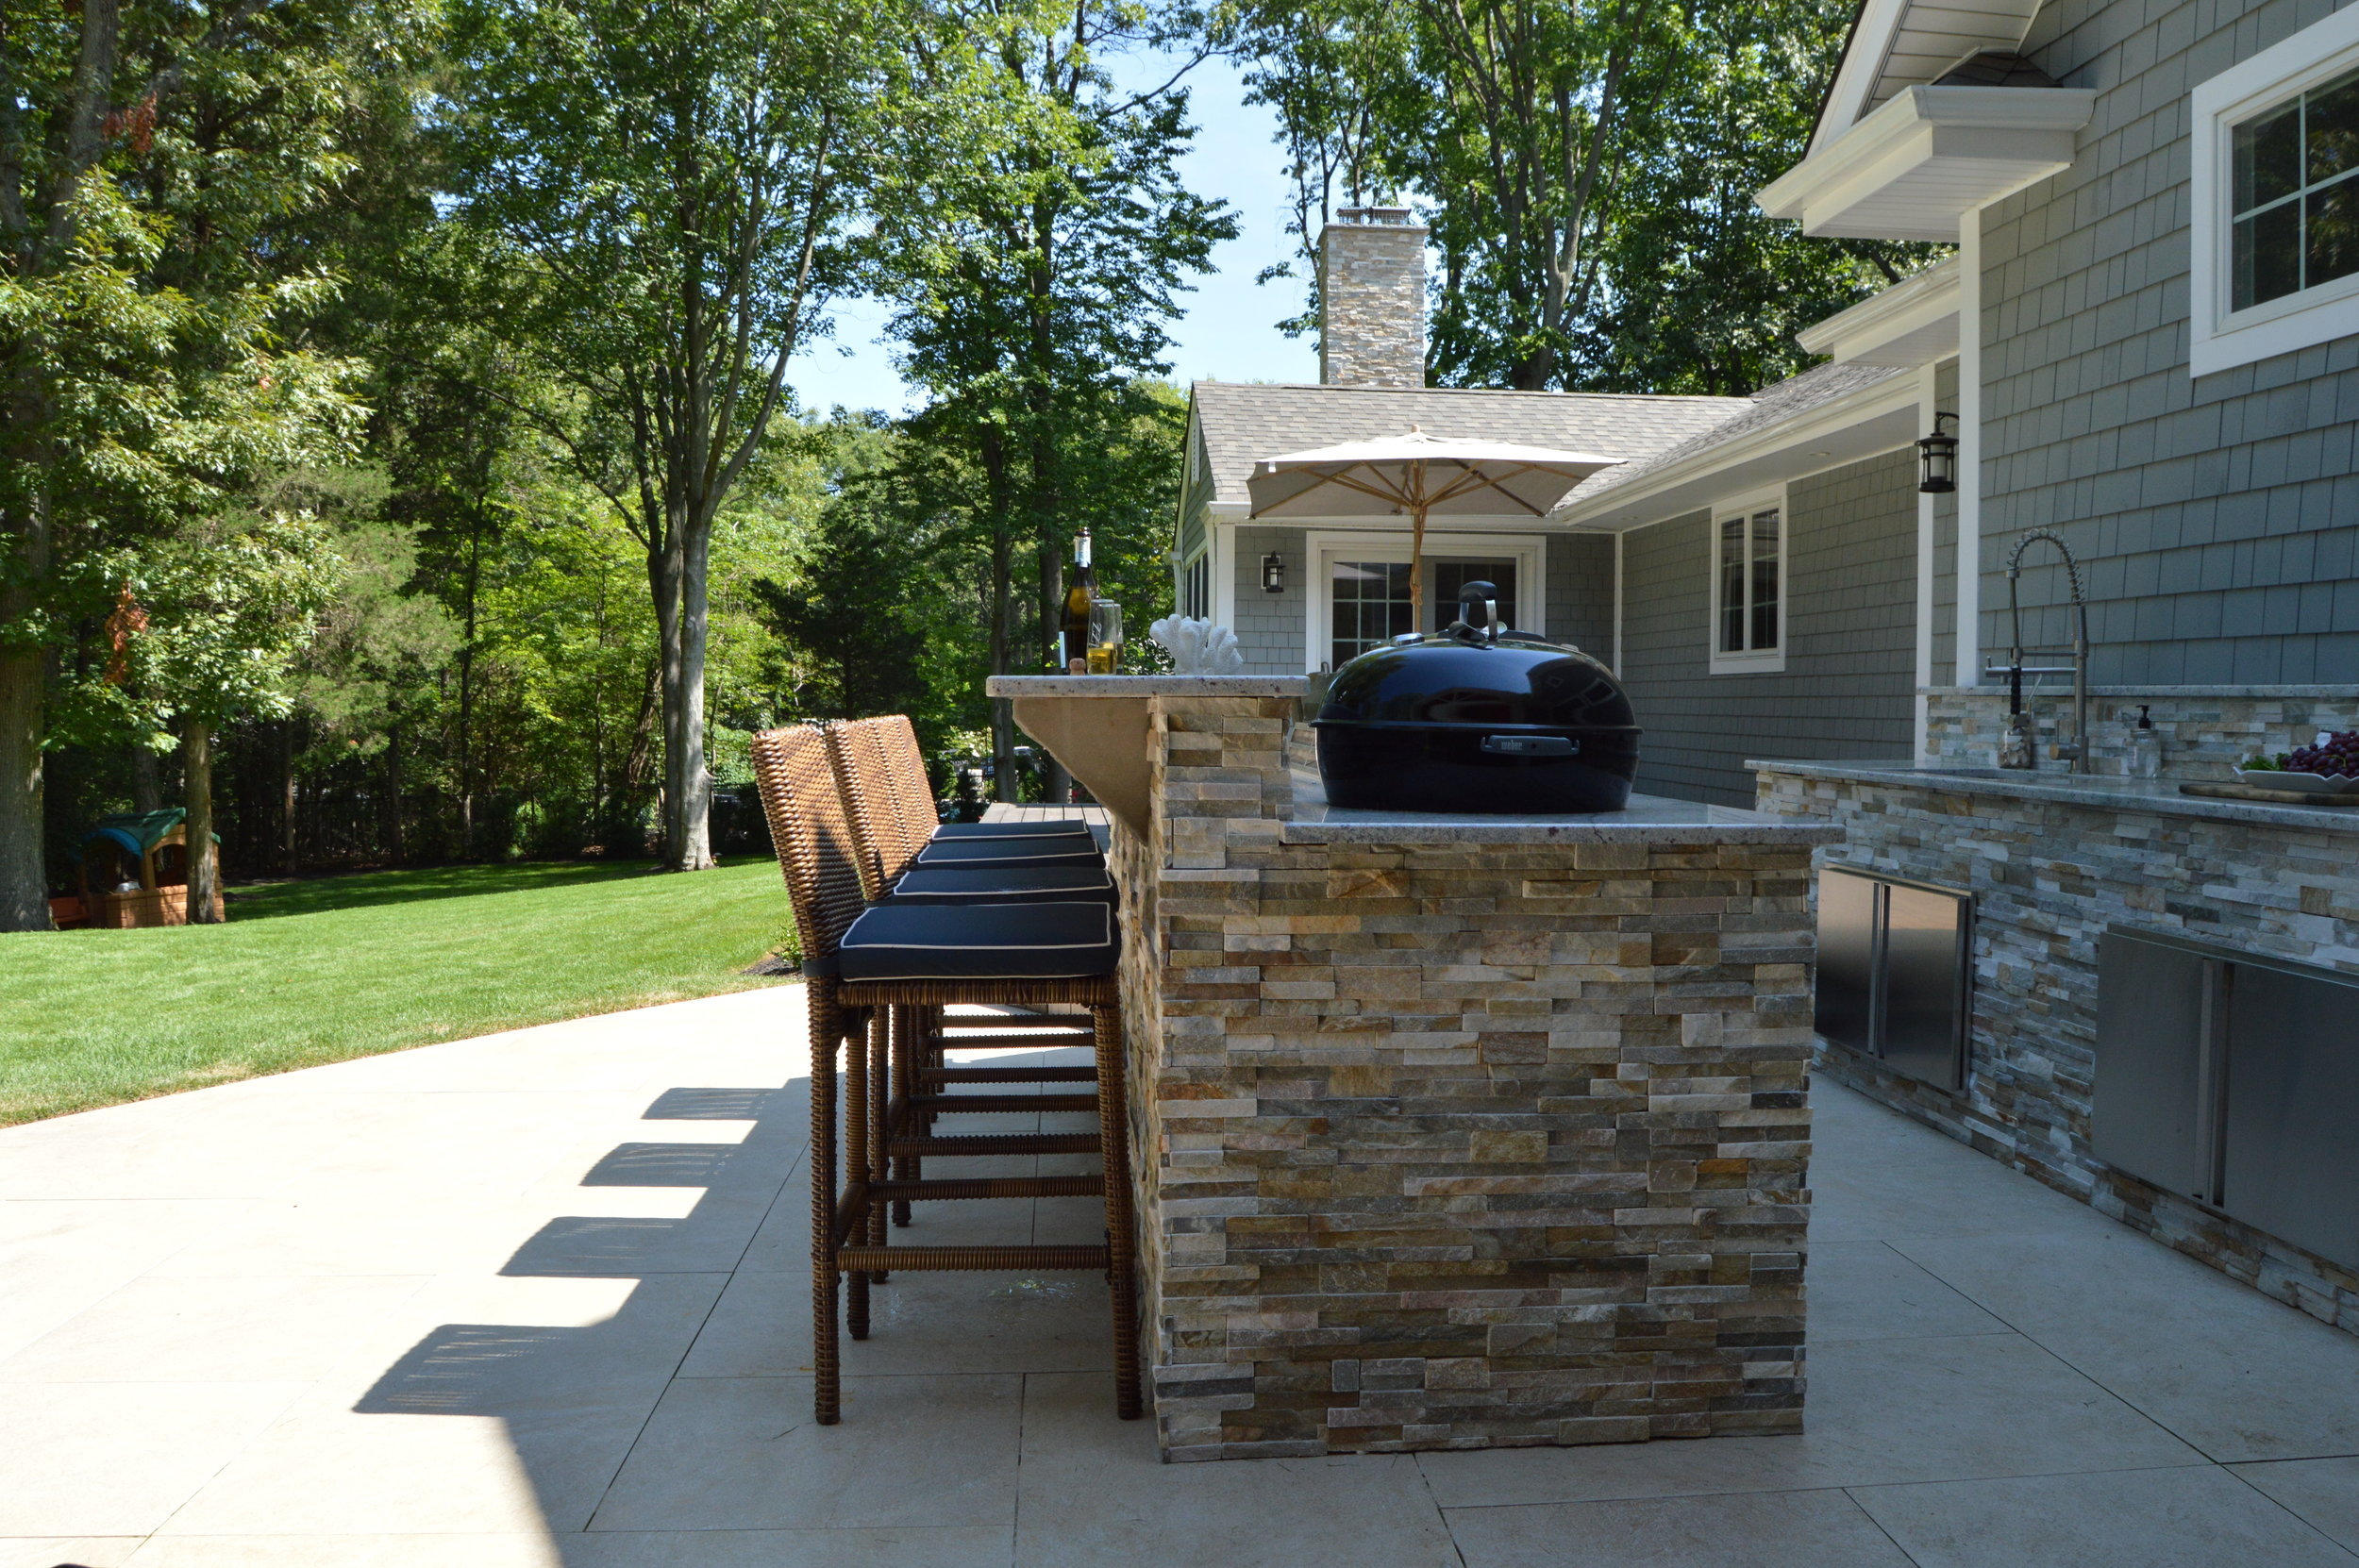 Long Island outdoor kitchen and bar with seating and natural stone